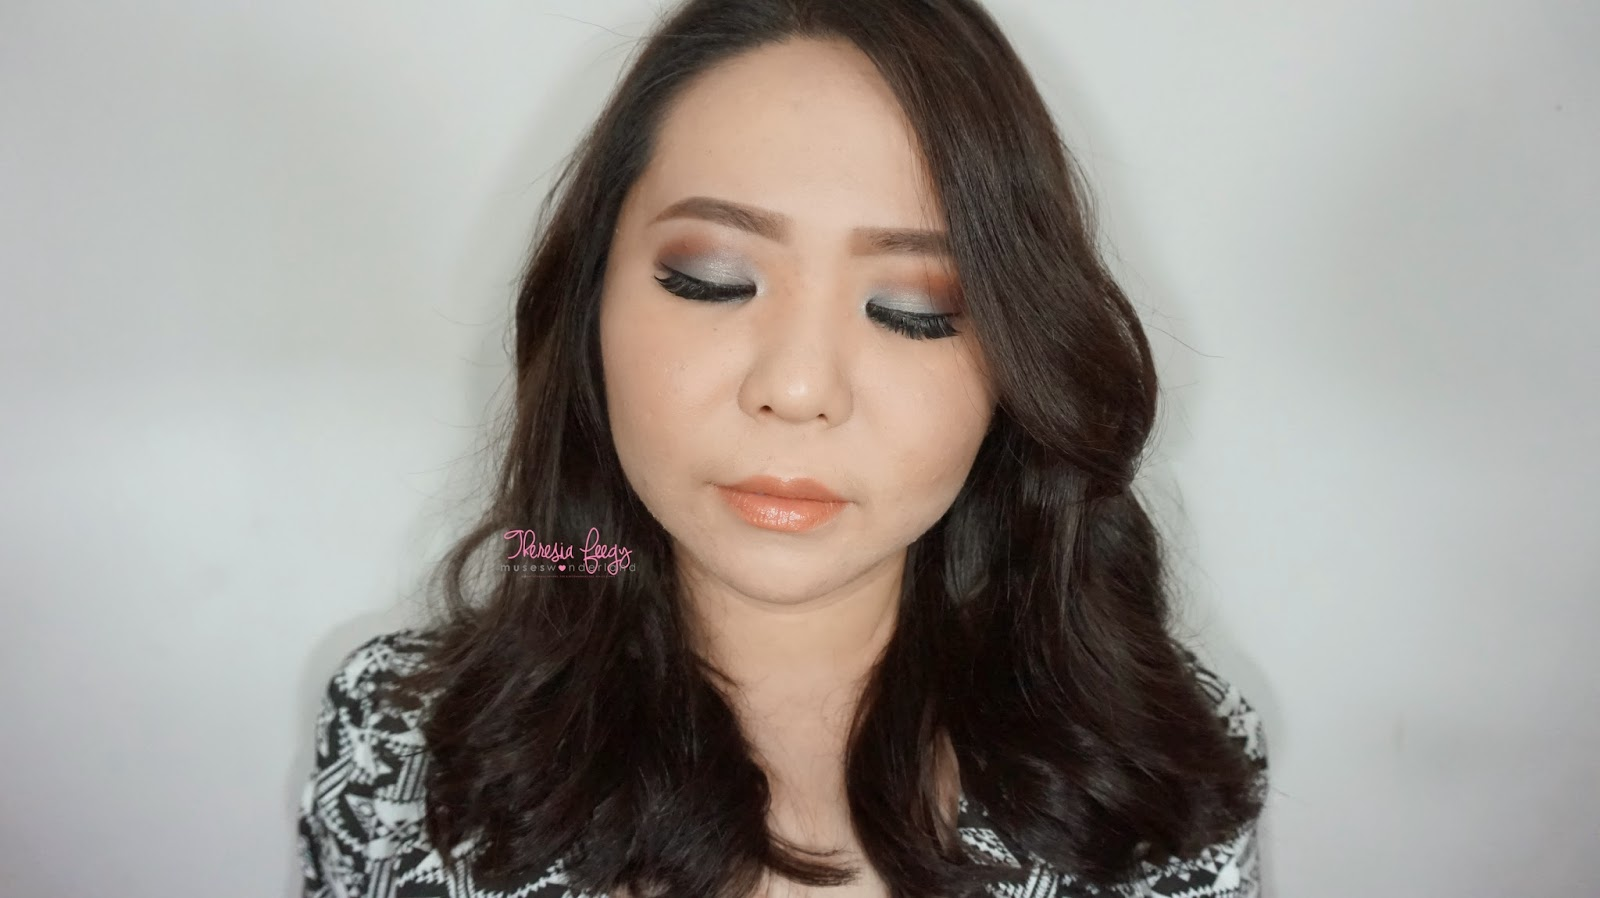 A natural silver with a warm brown for a day to day basis. Products used are coastal scent 120 palette, nyx jumbo eye pencil in milk, lavie lash, anastasia beverly hills on the brow, makeover in everlasting kiss, sleek face form in light, sariayu and kji & co tokyo.